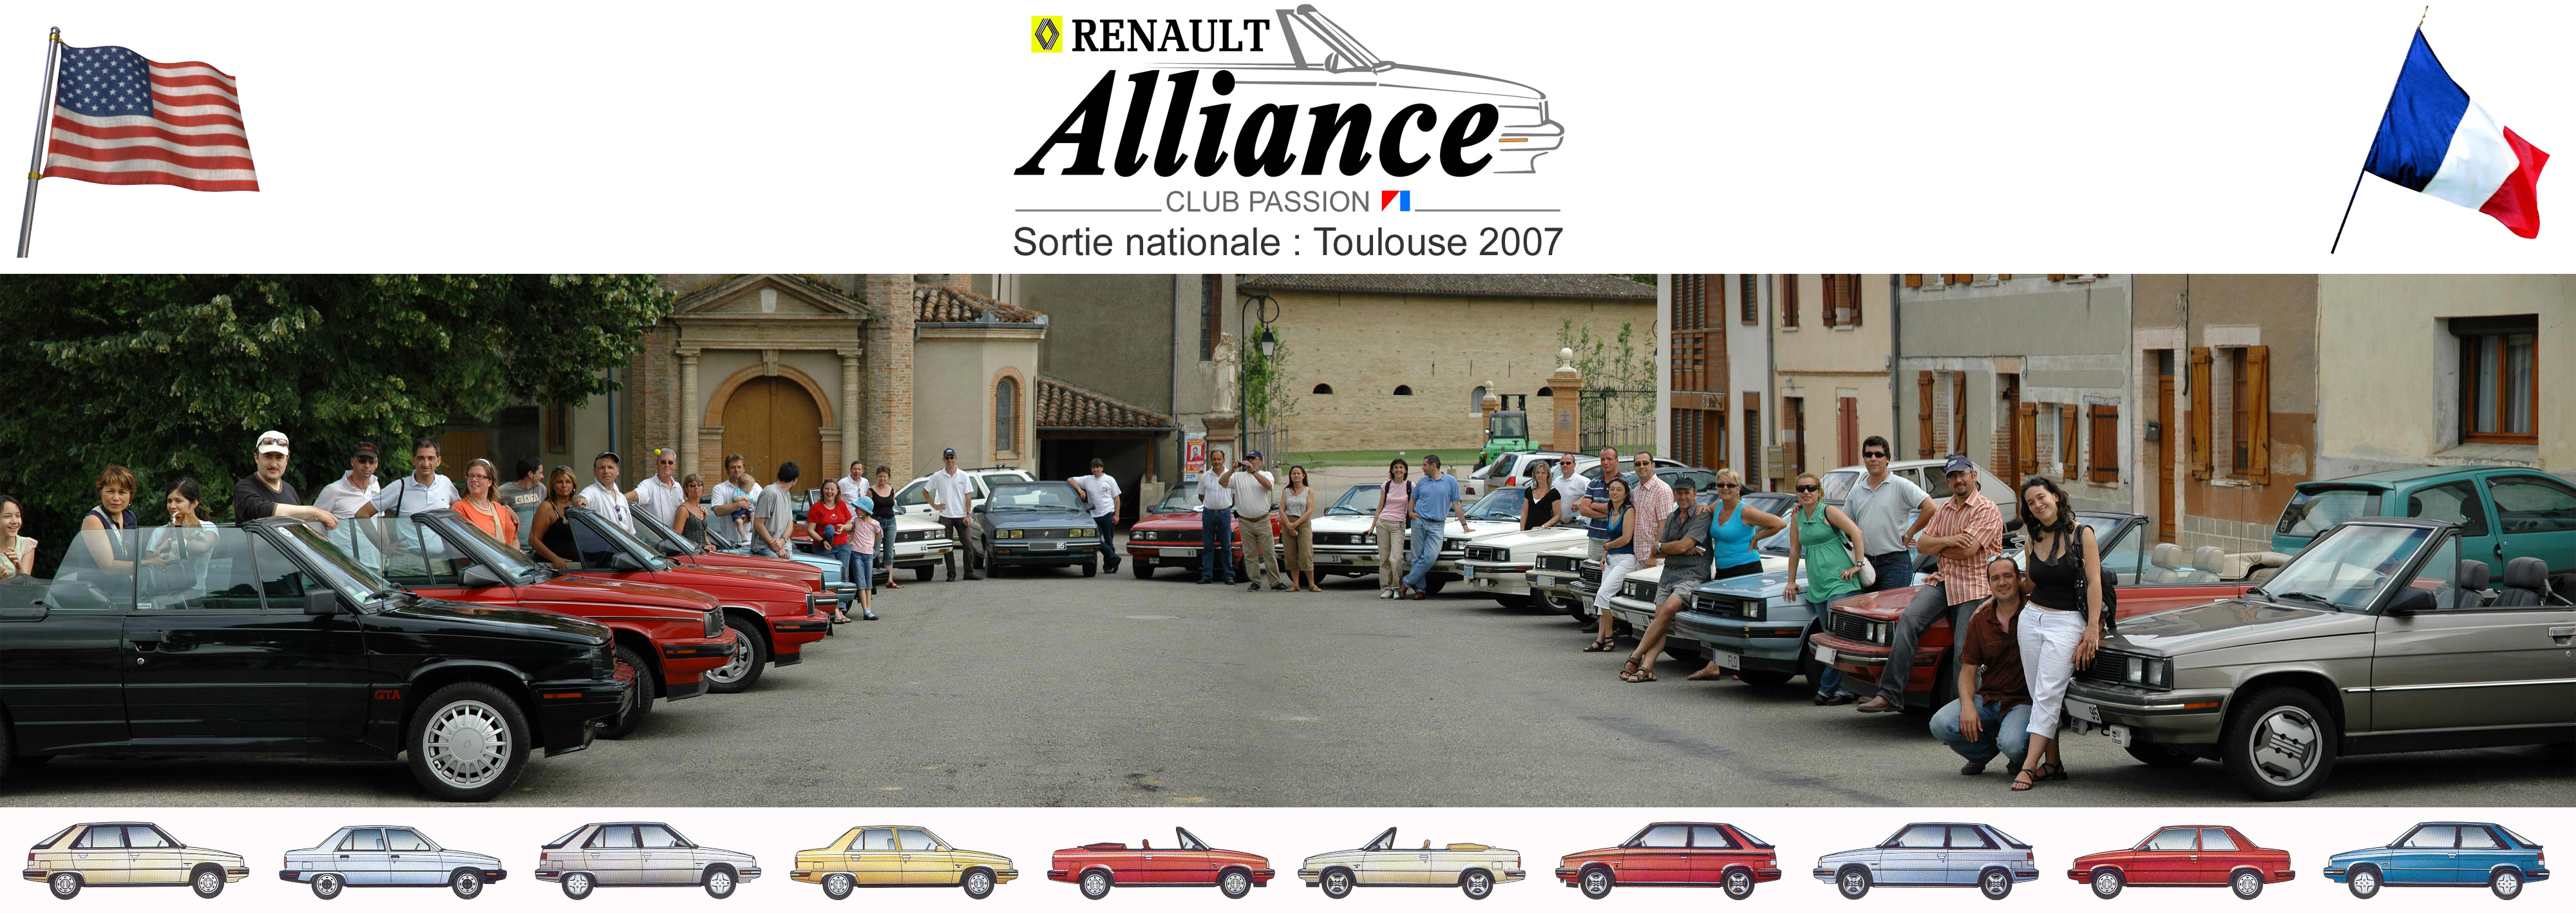 volvo renault alliance 1983 renault alliance reviews: read 3 candid owner reviews for the 1983 renault alliance get the real truth from owners like you.